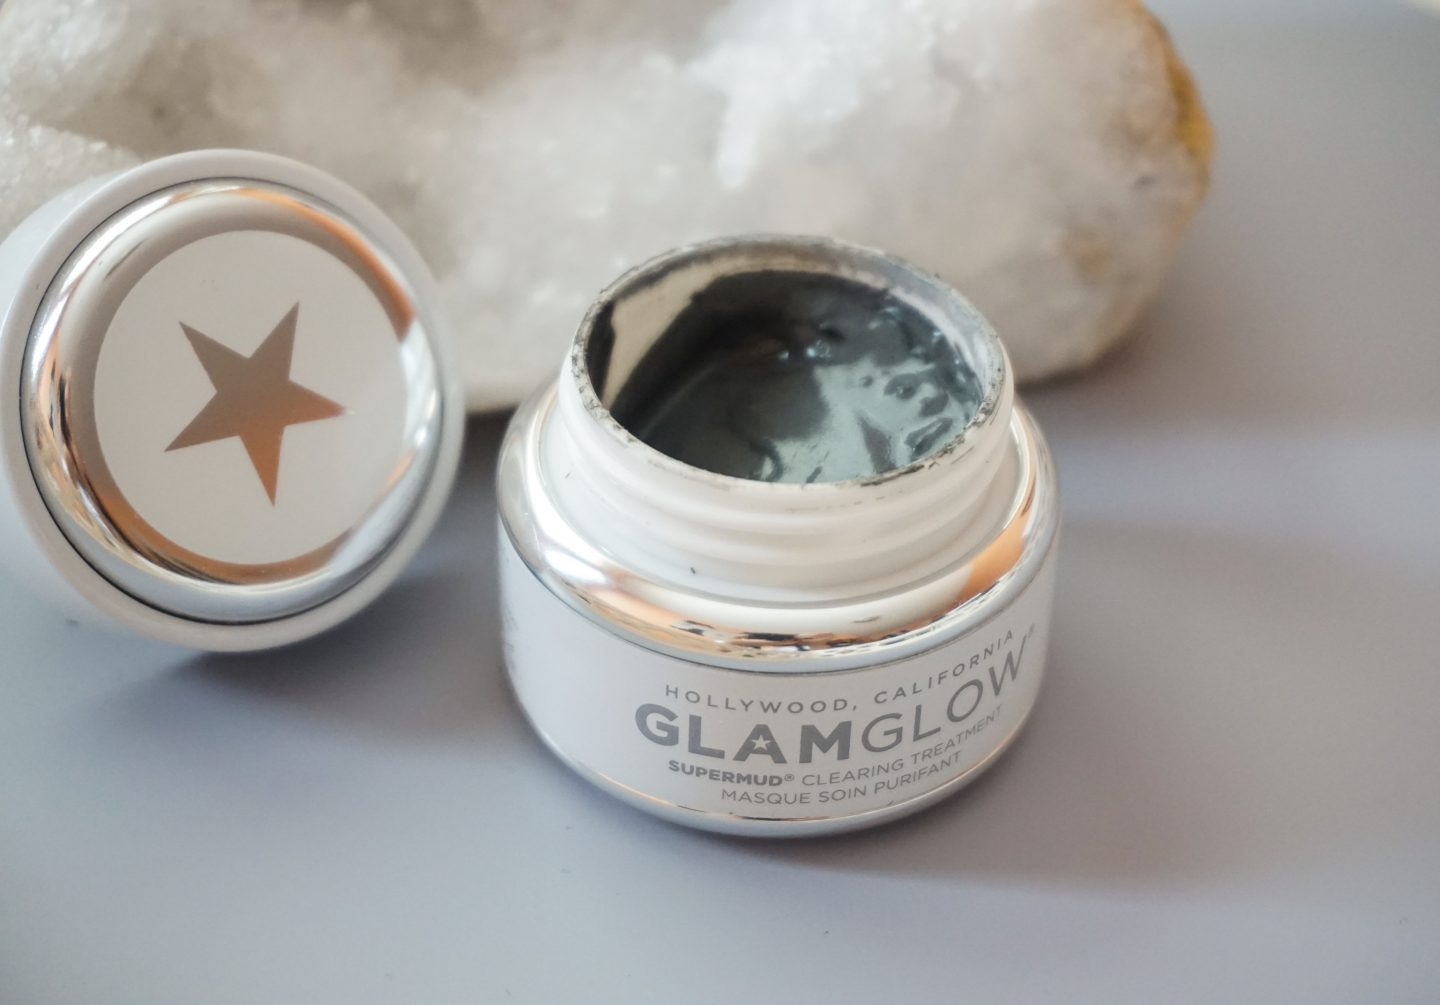 Review: GLAMGLOW Supermud Clearing Treatment